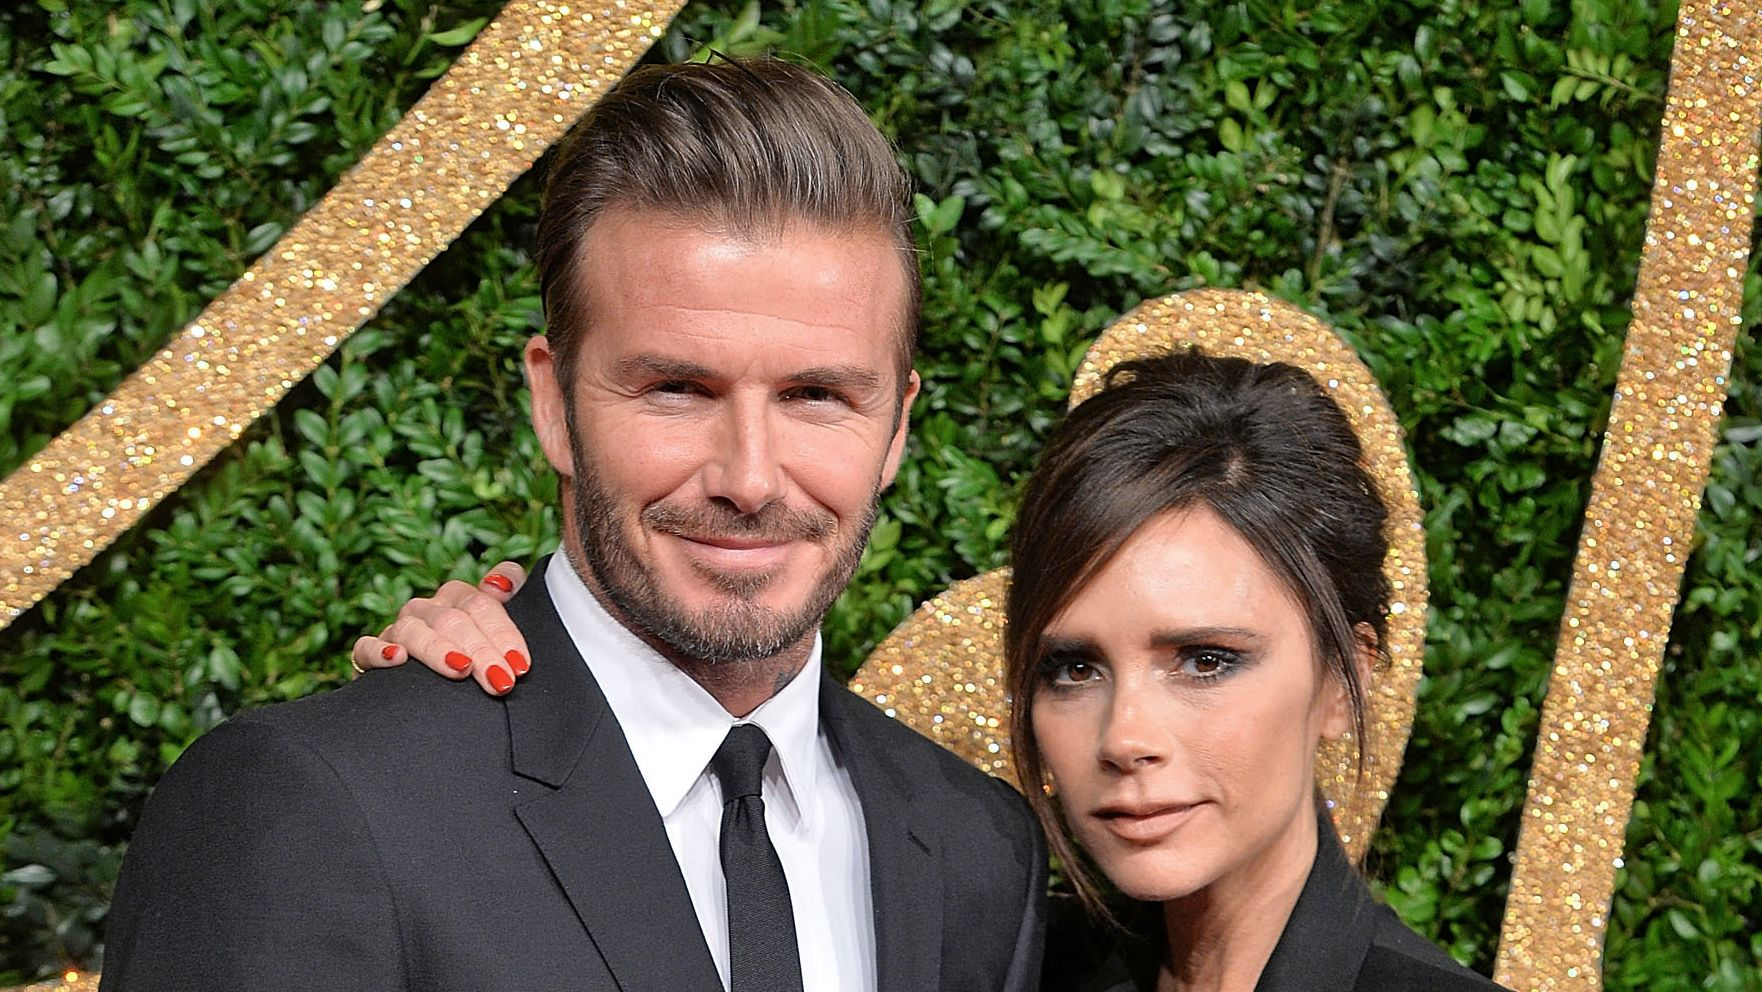 The Beckhams: Through the years